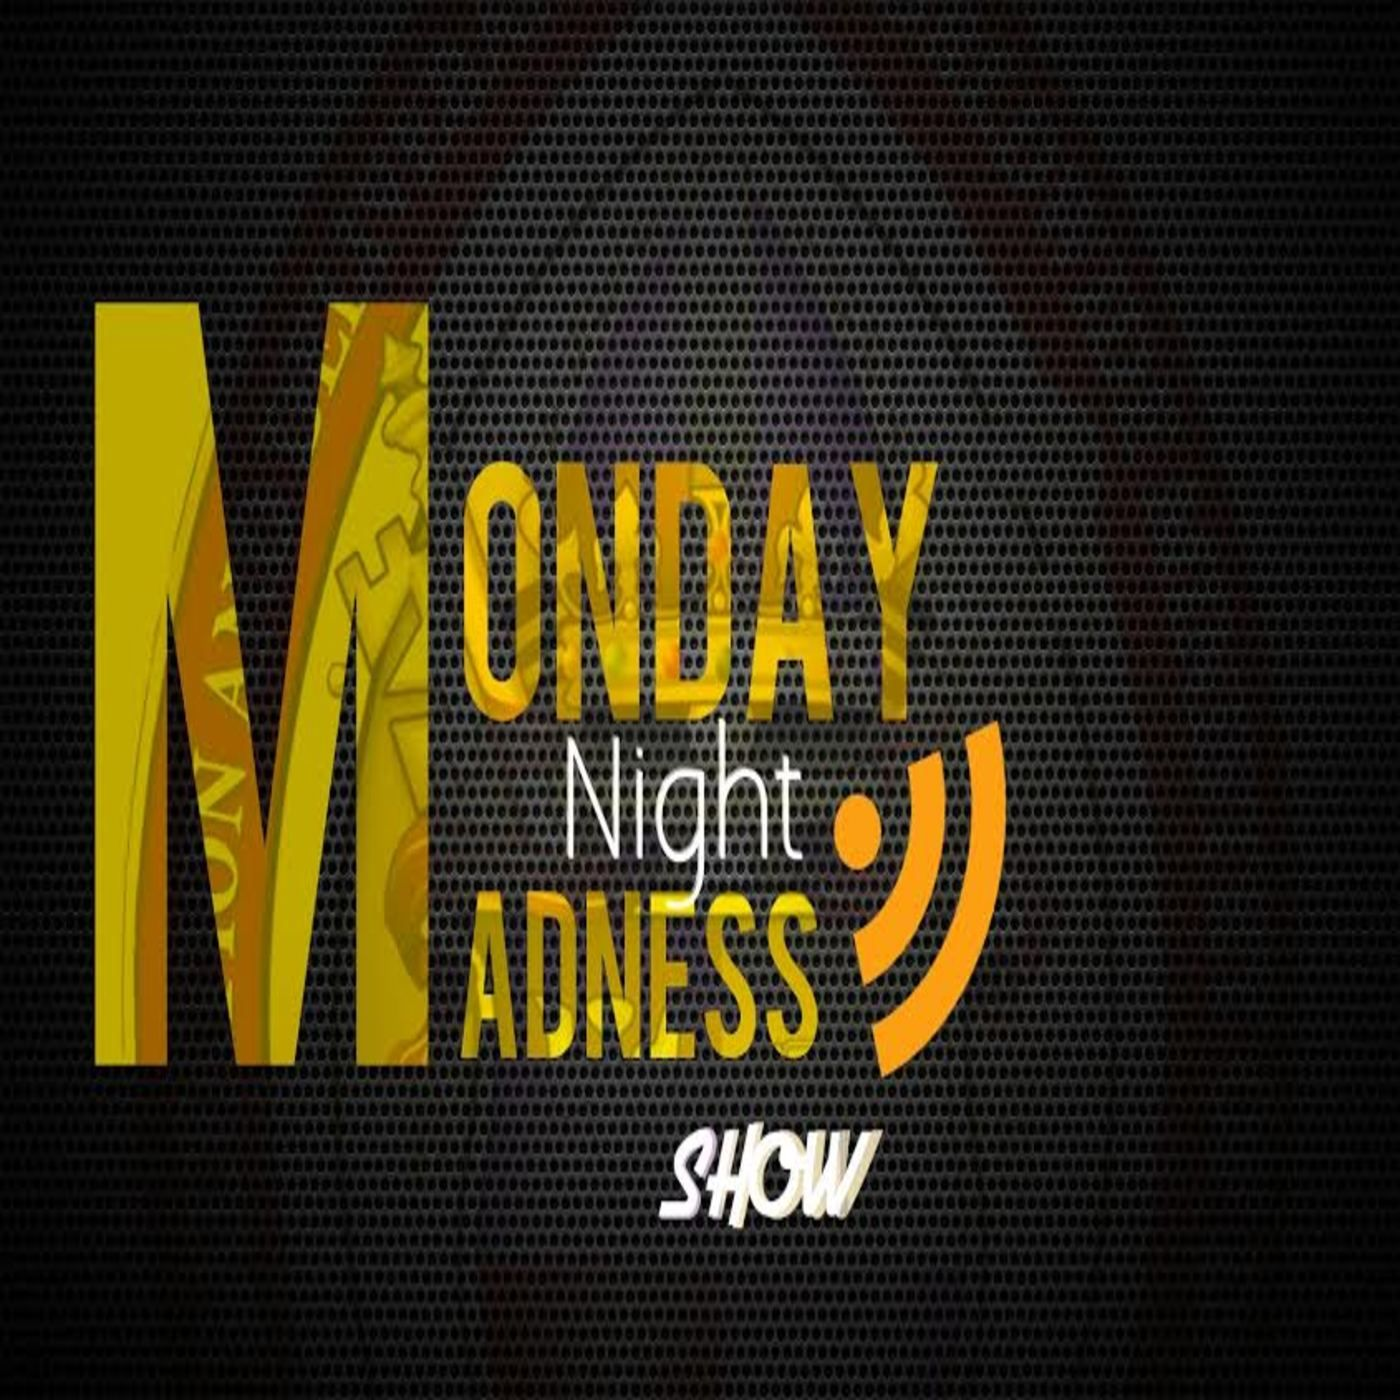 Monday Night Madness Show's tracks